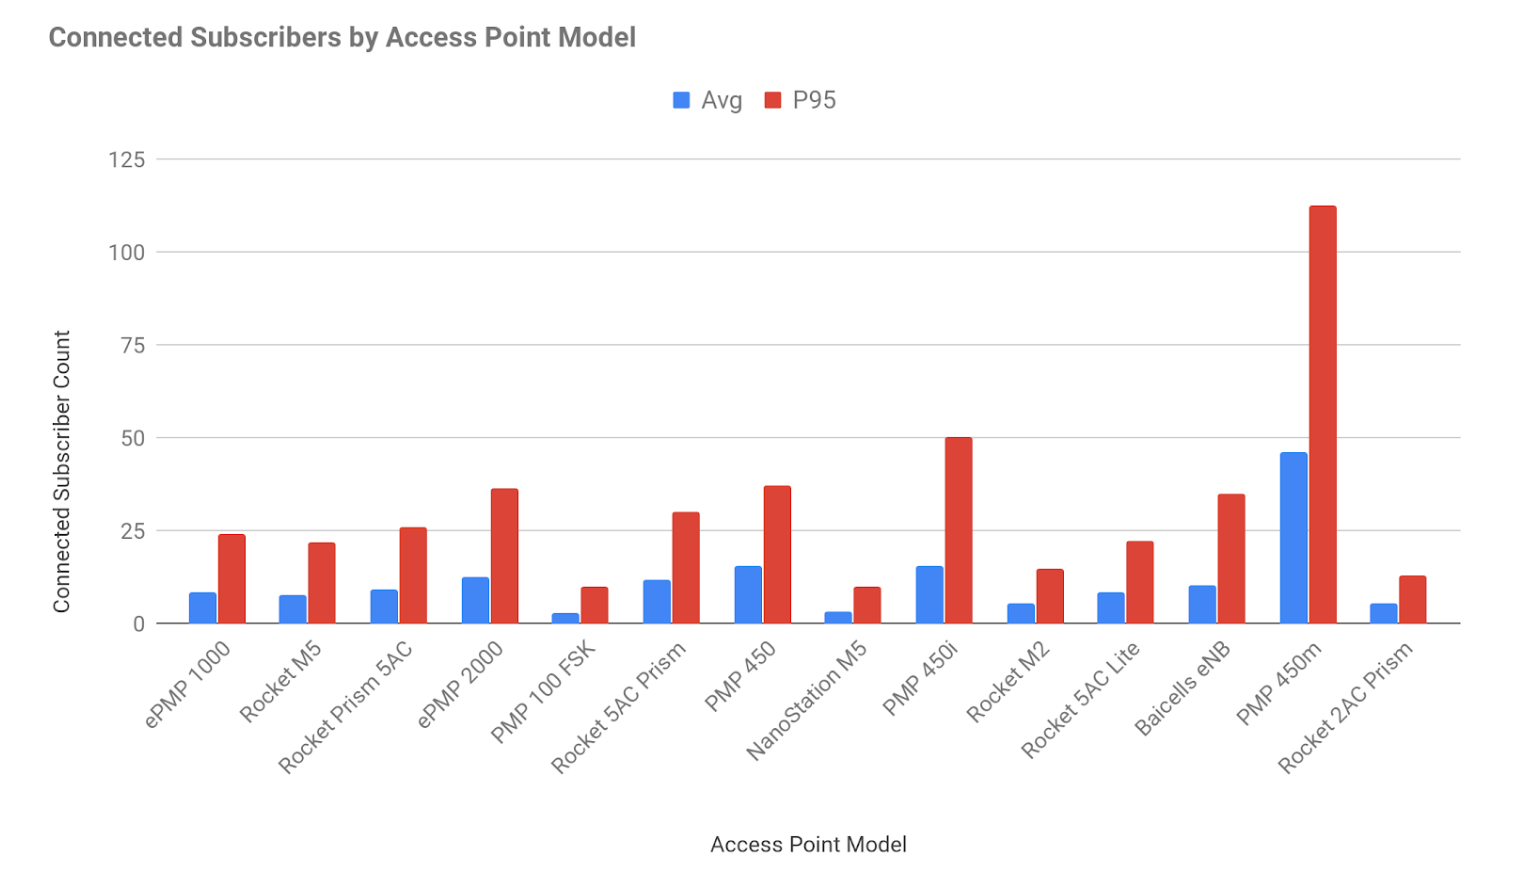 A bar chart showing Connected Subscribers by Model